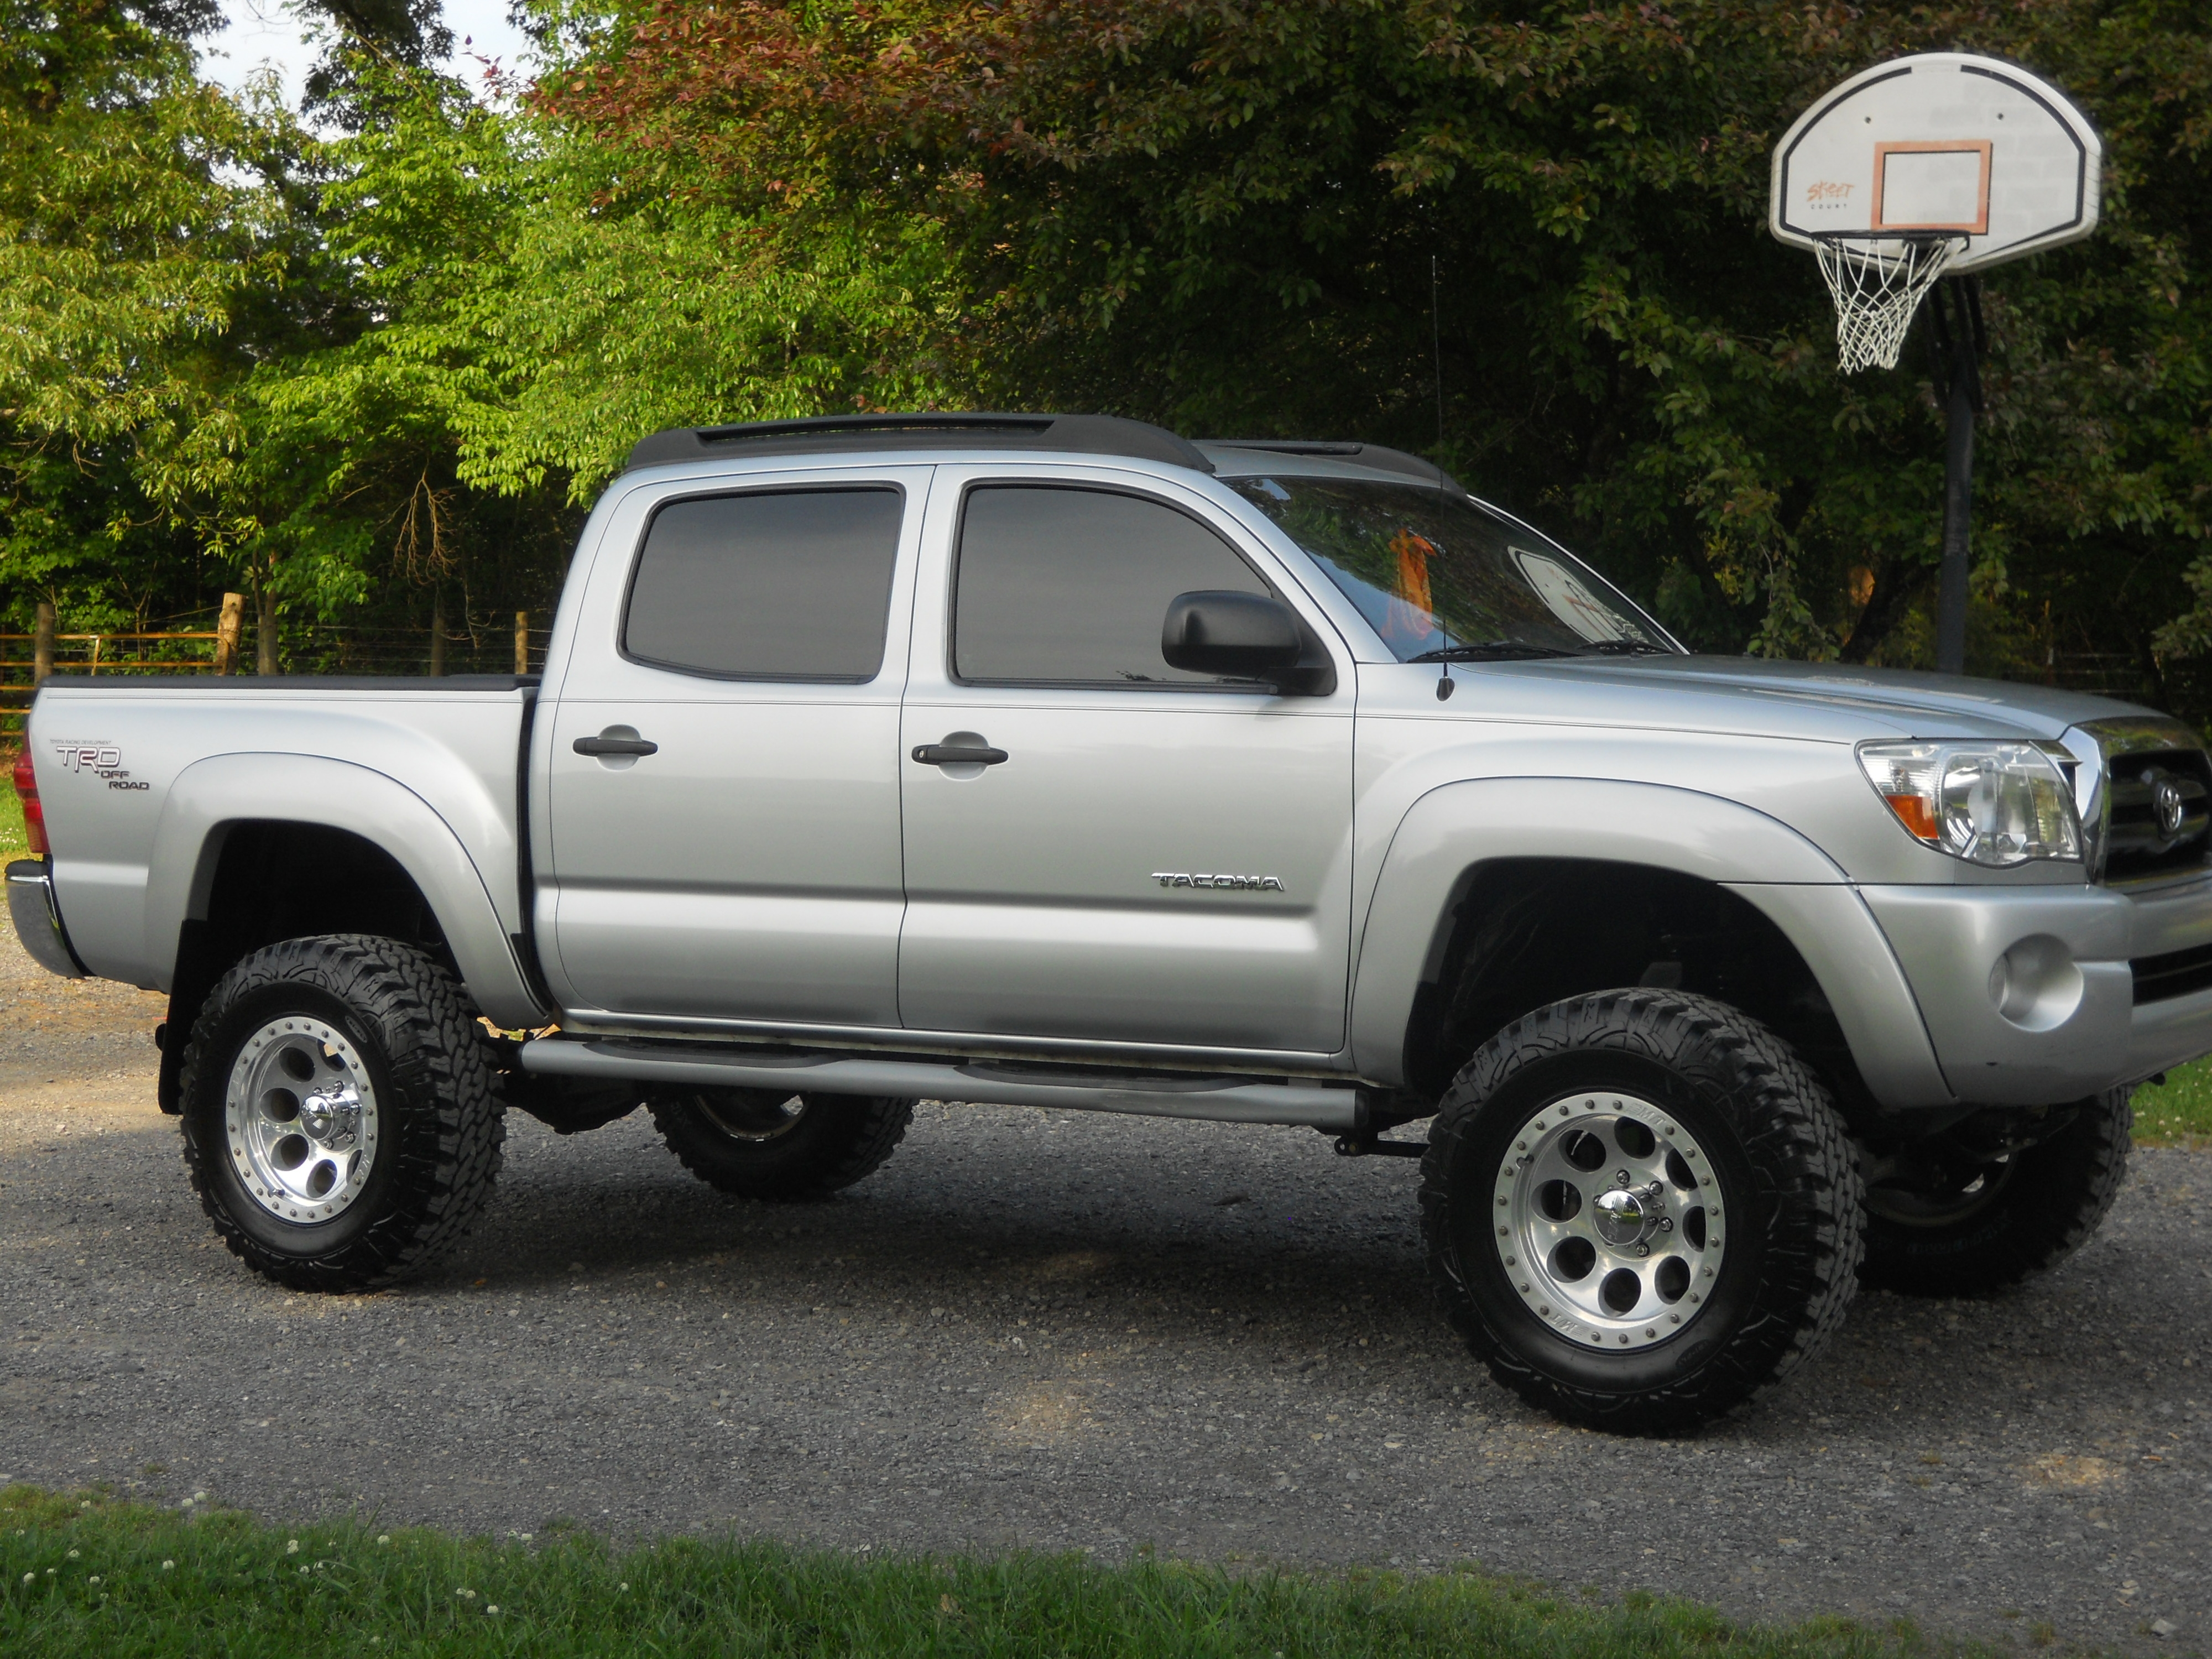 Toyota Tacoma Double Cab exterior specifications